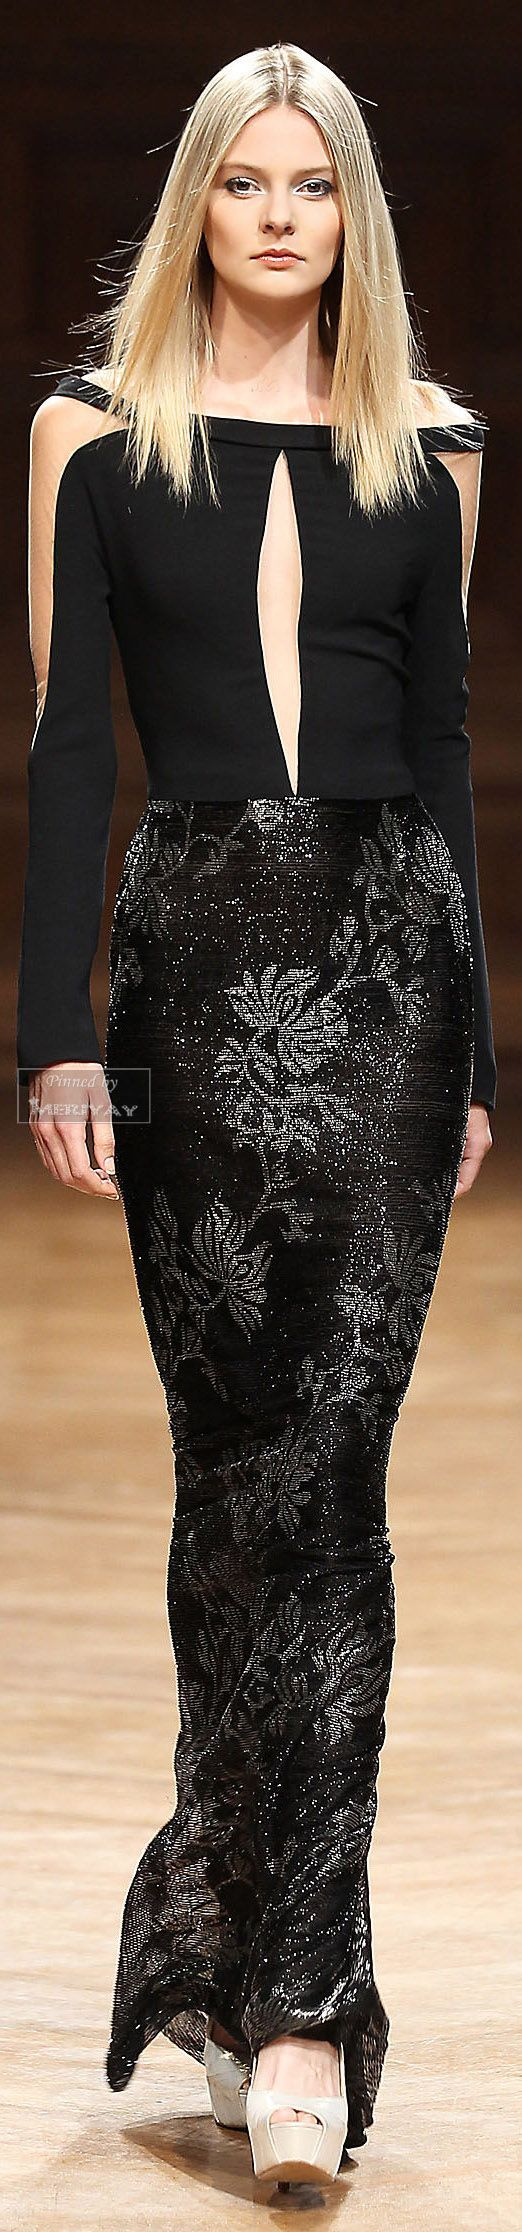 Tony ward fw 2014 15 haute couture collection evening for Haute couture male